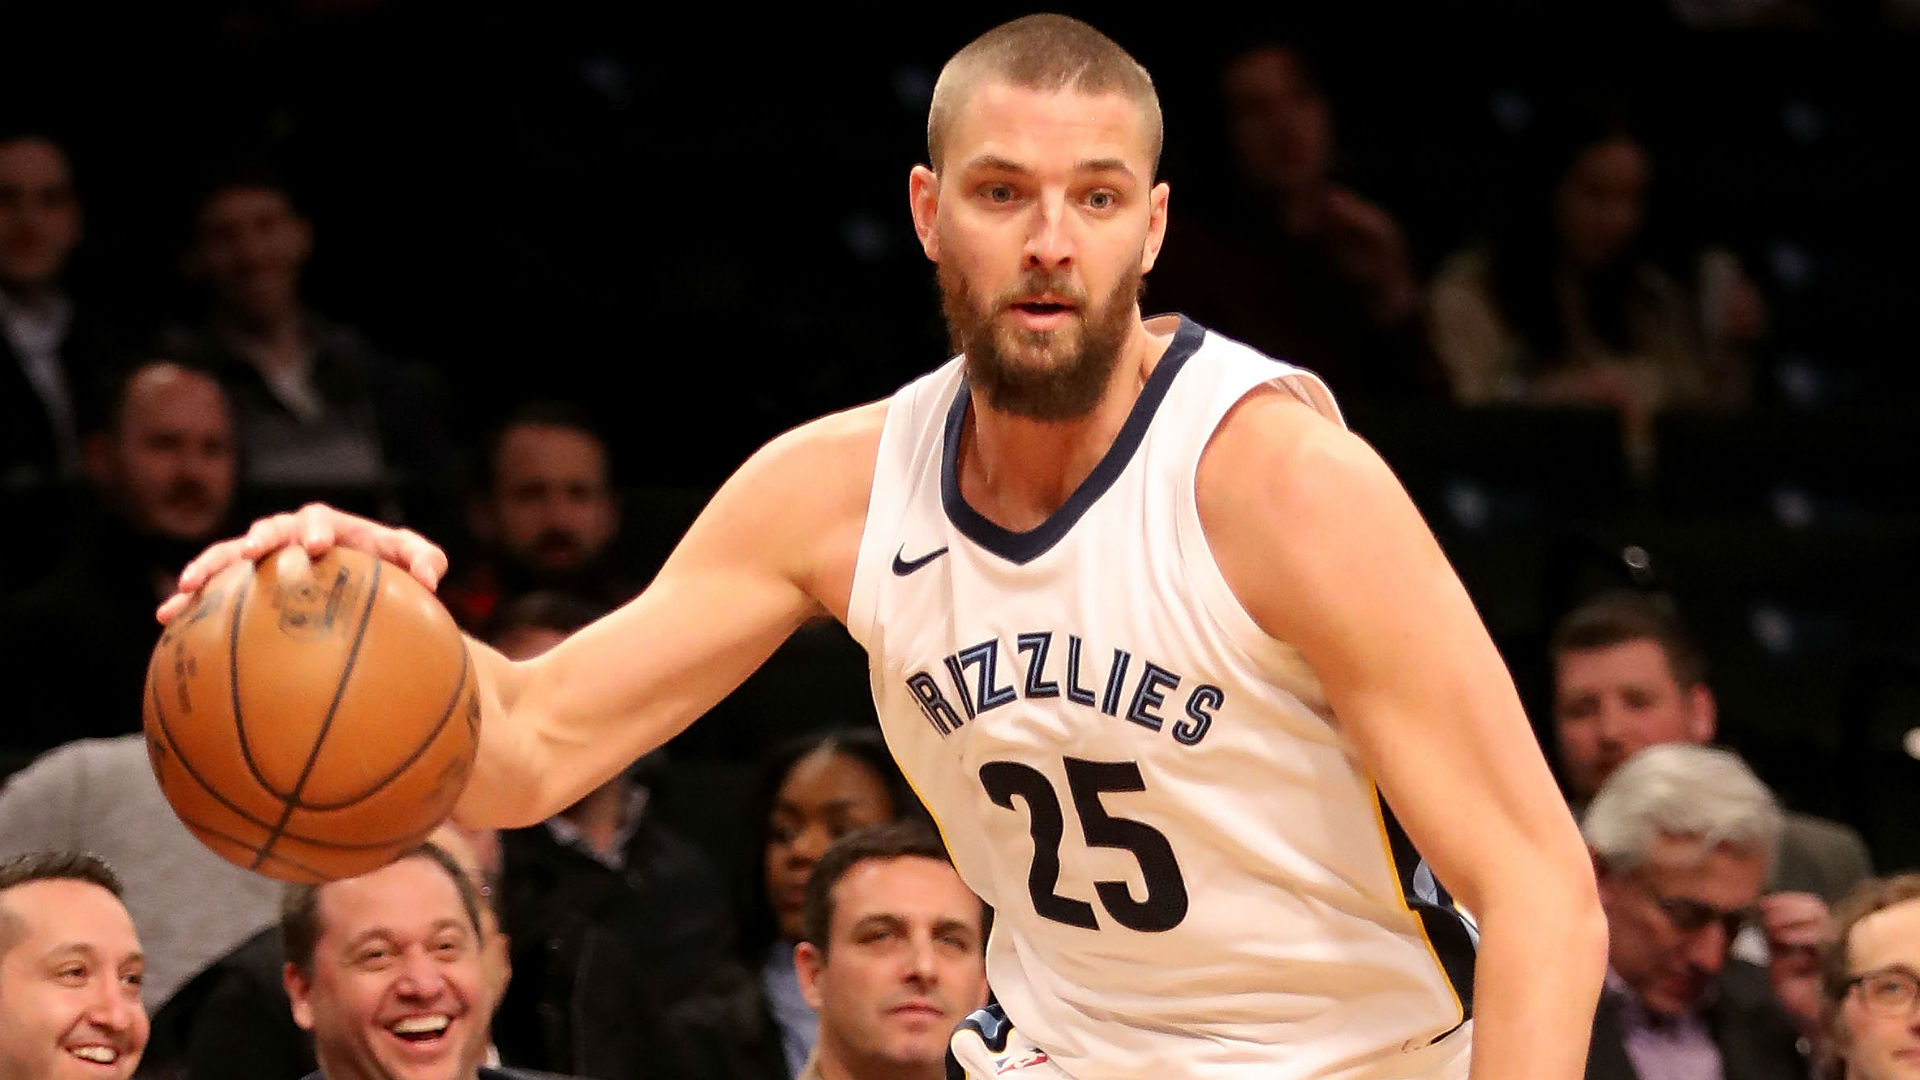 Chandler Parsons 'disappointed' to leave Grizzlies, 'ready to play'